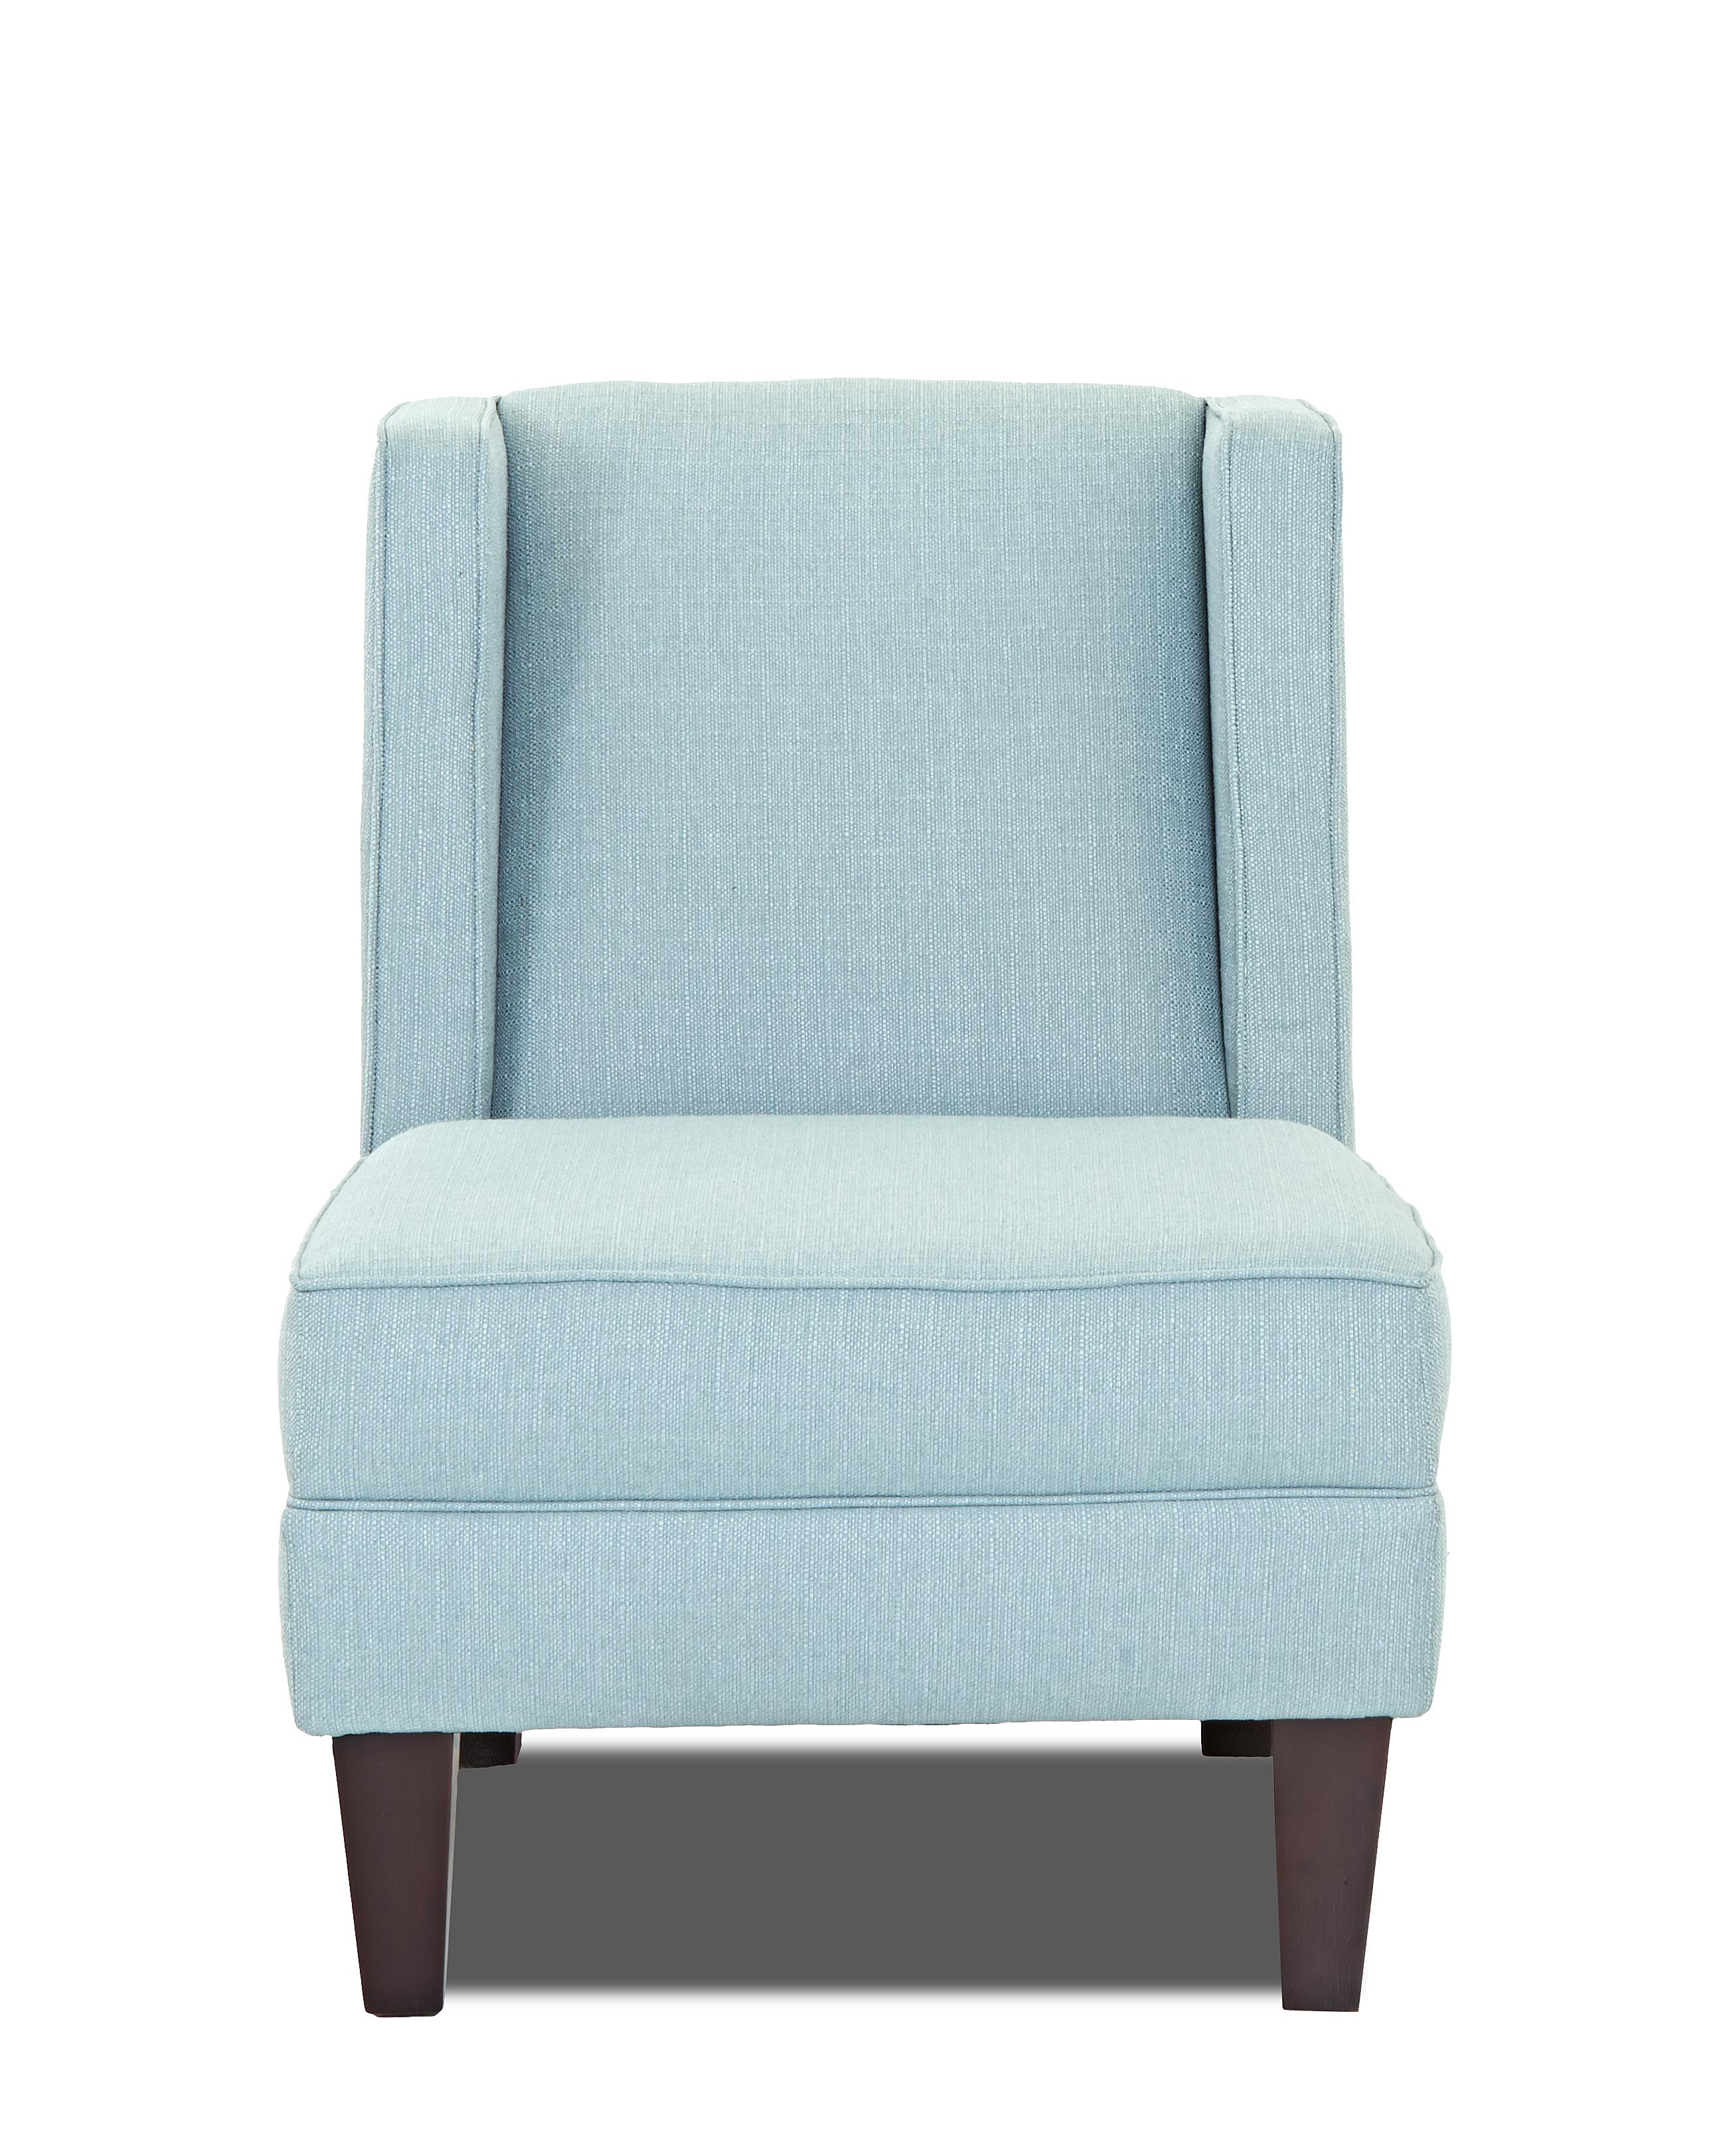 Klaussner Kaitlyn Occasional Chair - Item Number: K940 OC-DraftTurquoise